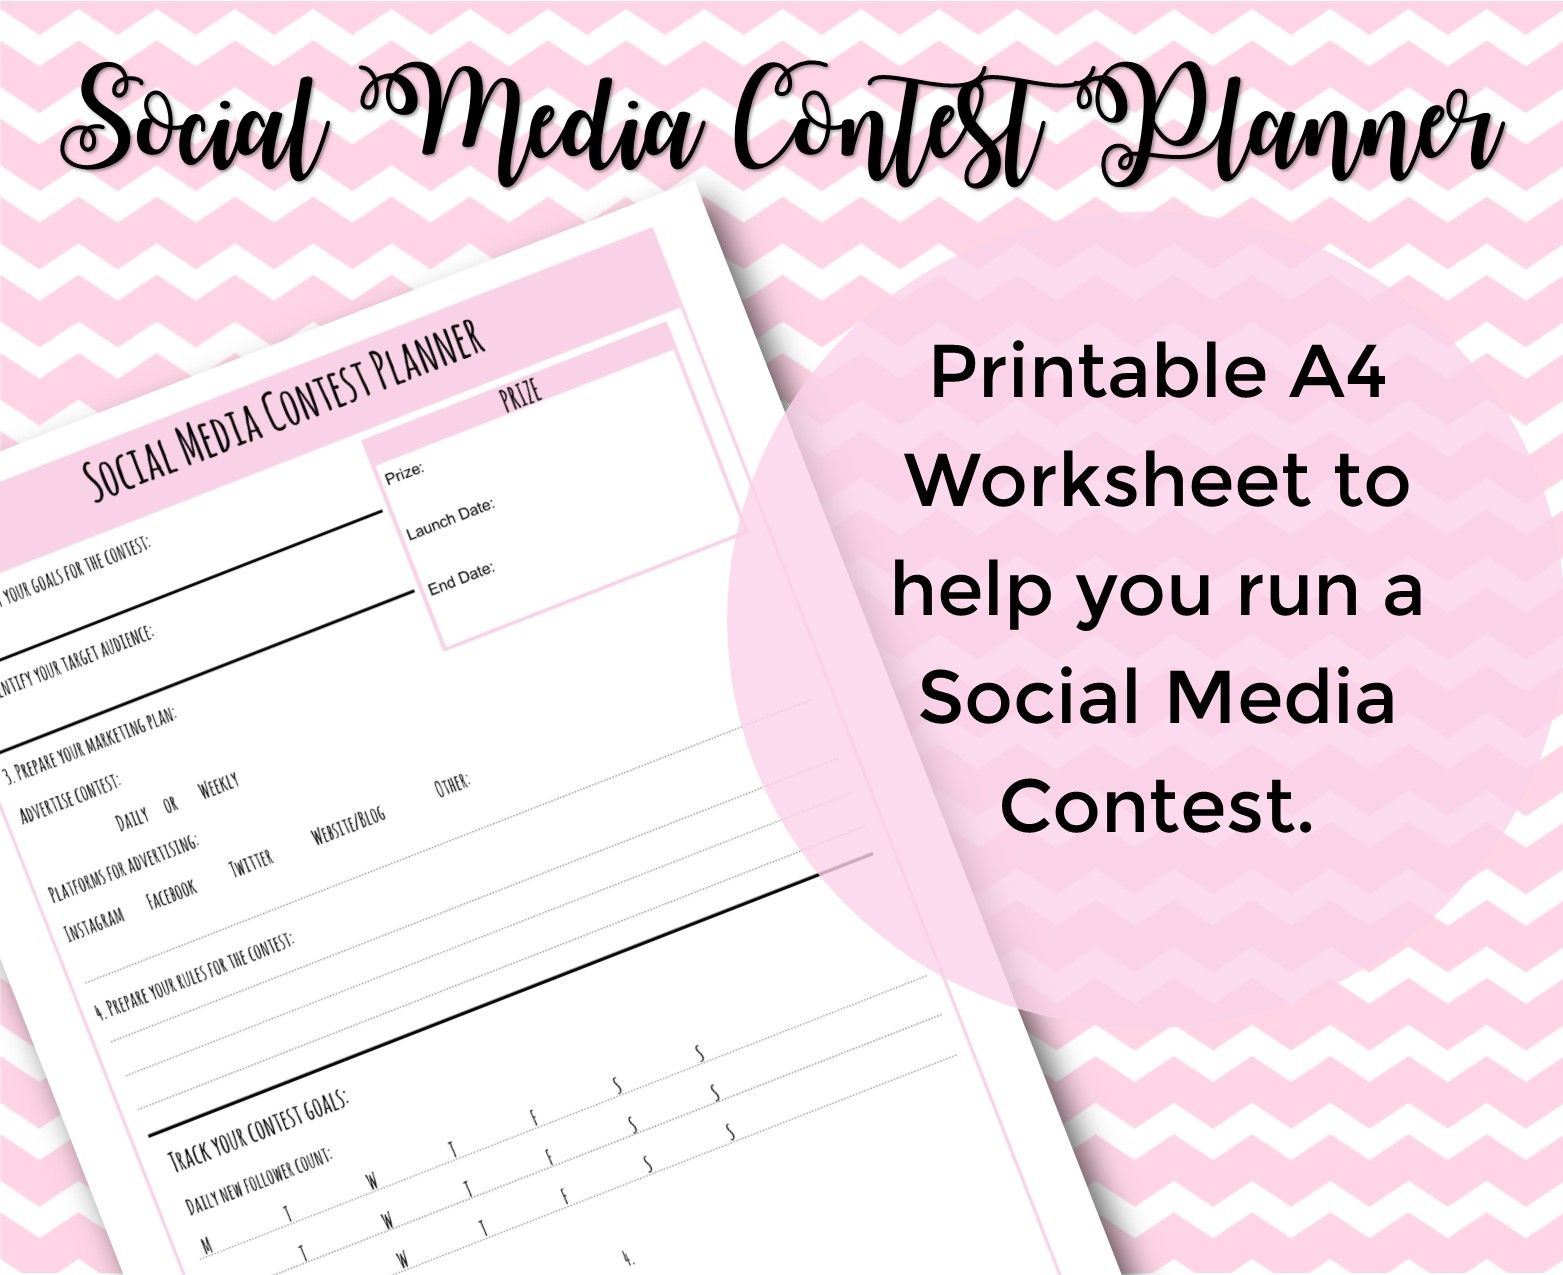 Social Media Contest Planner Printable Worksheet Social